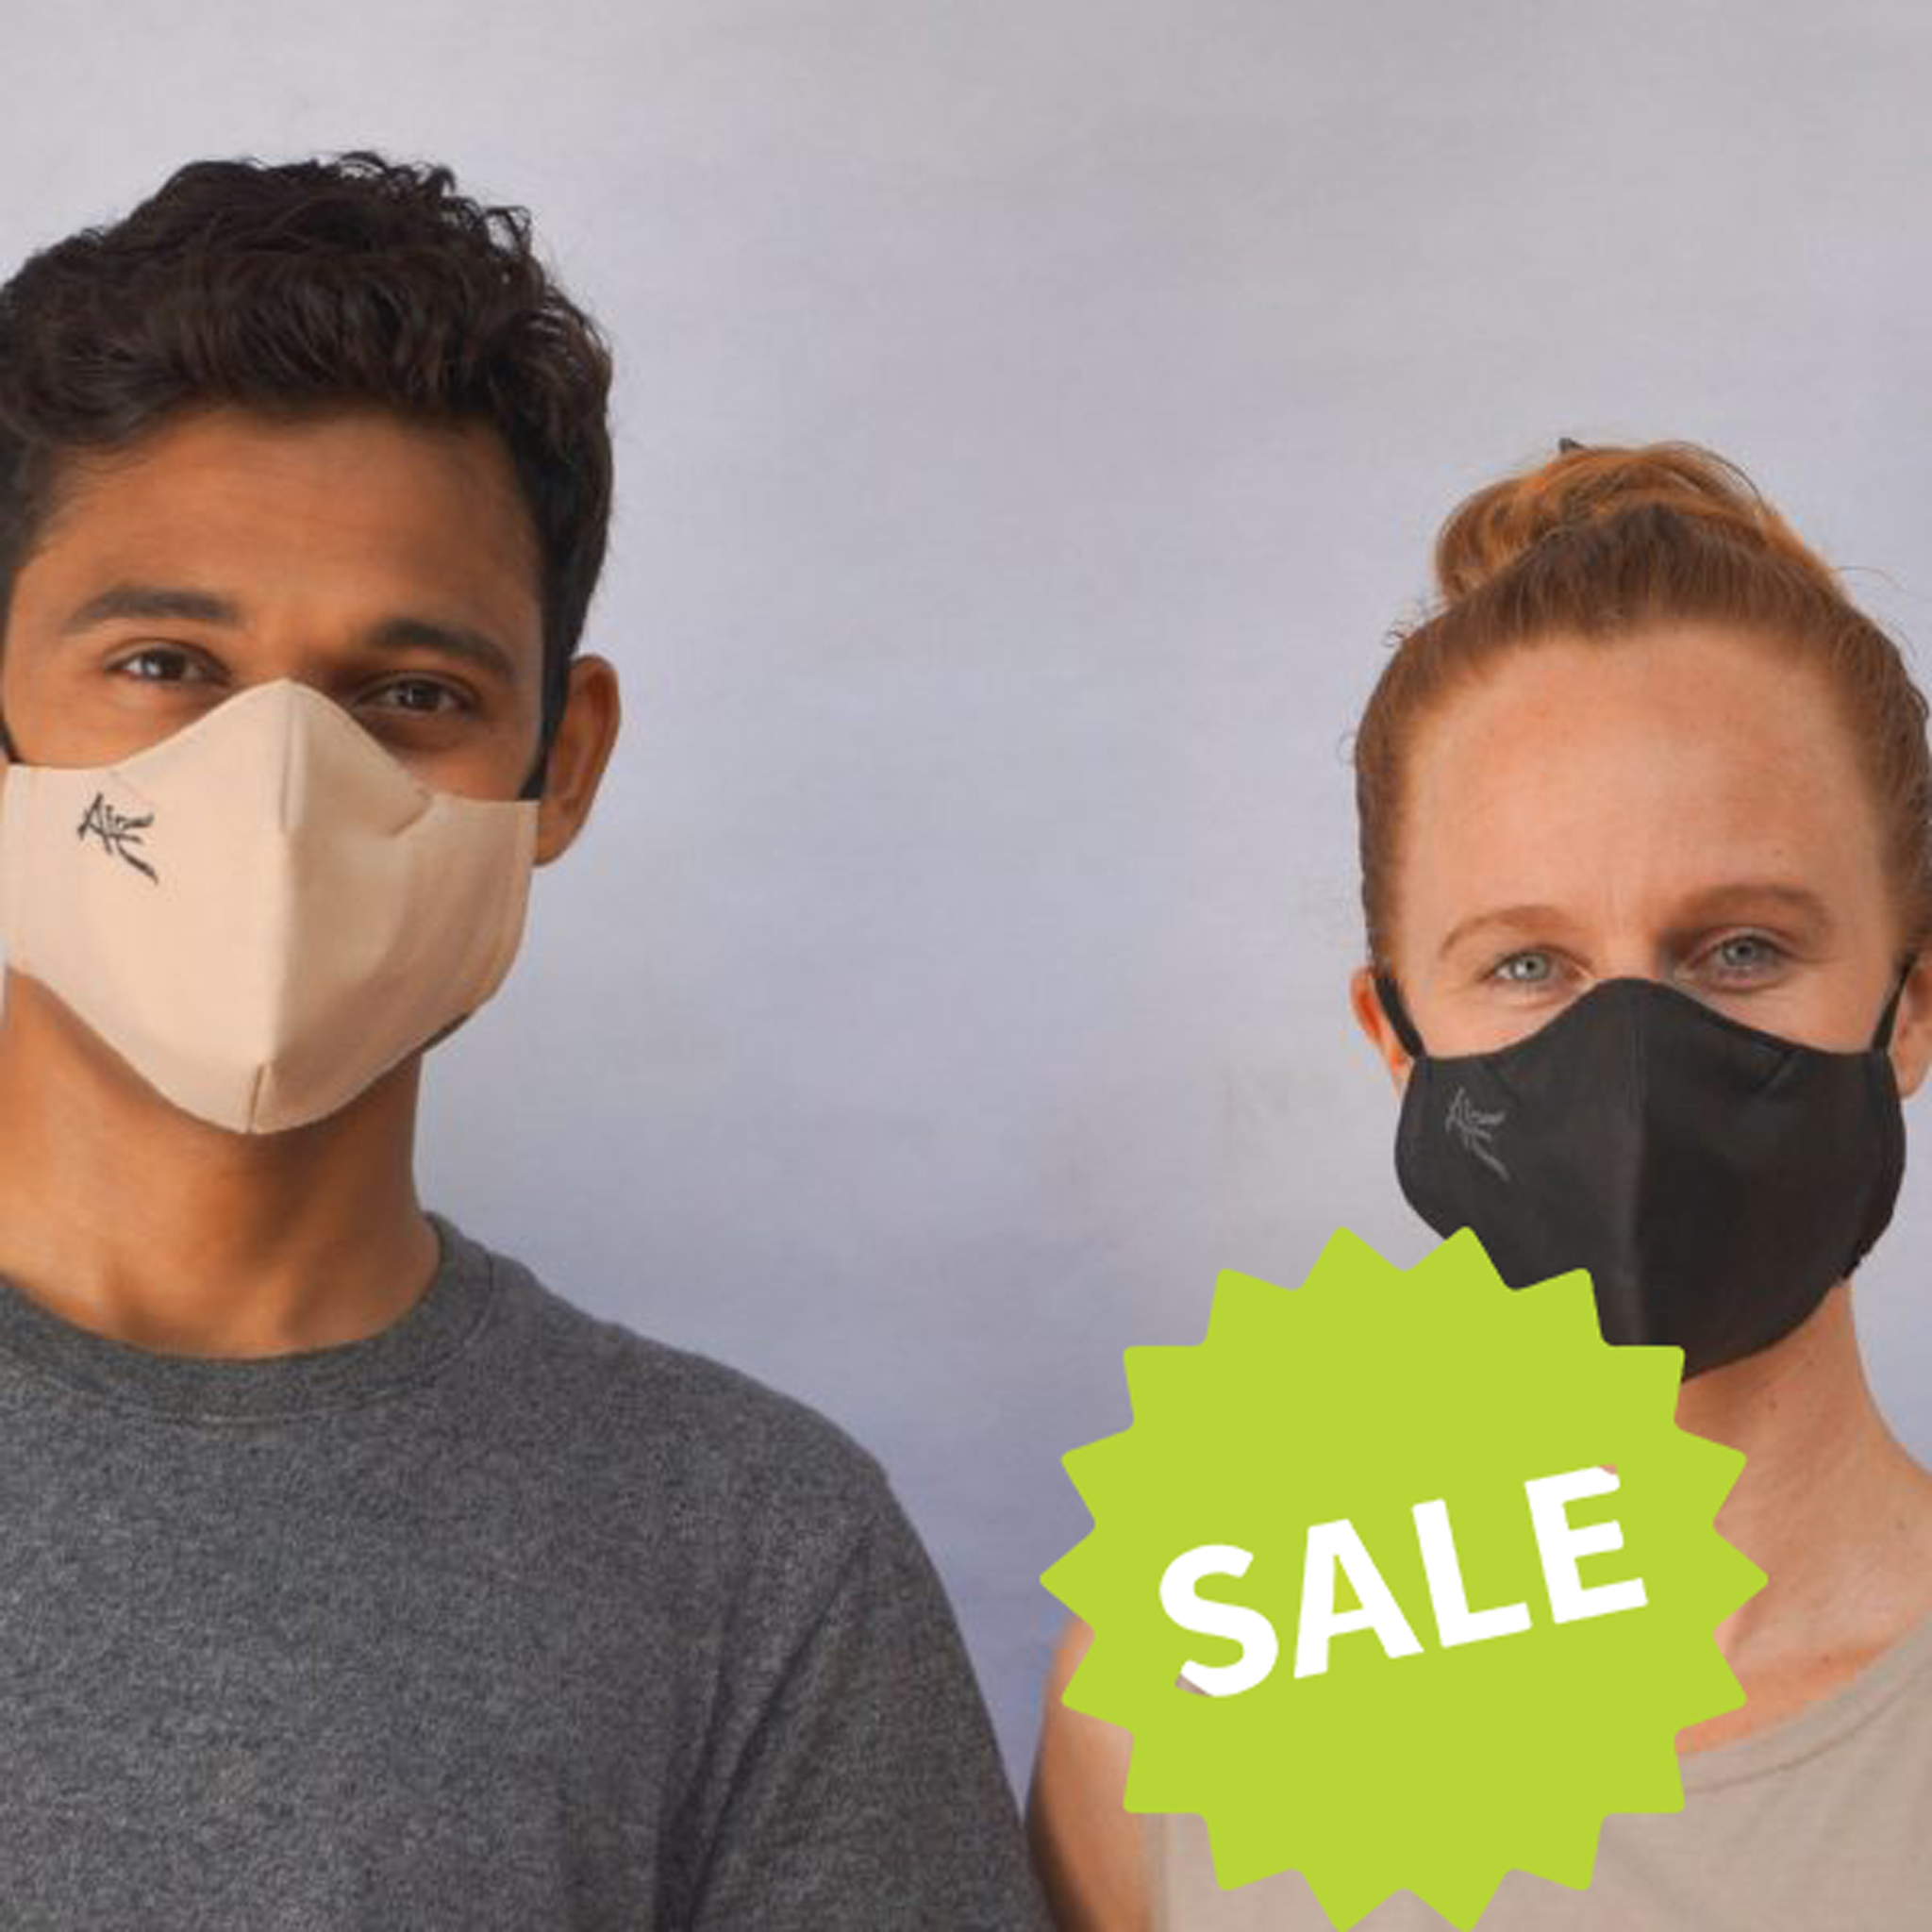 Protective and anti-pollution face mask